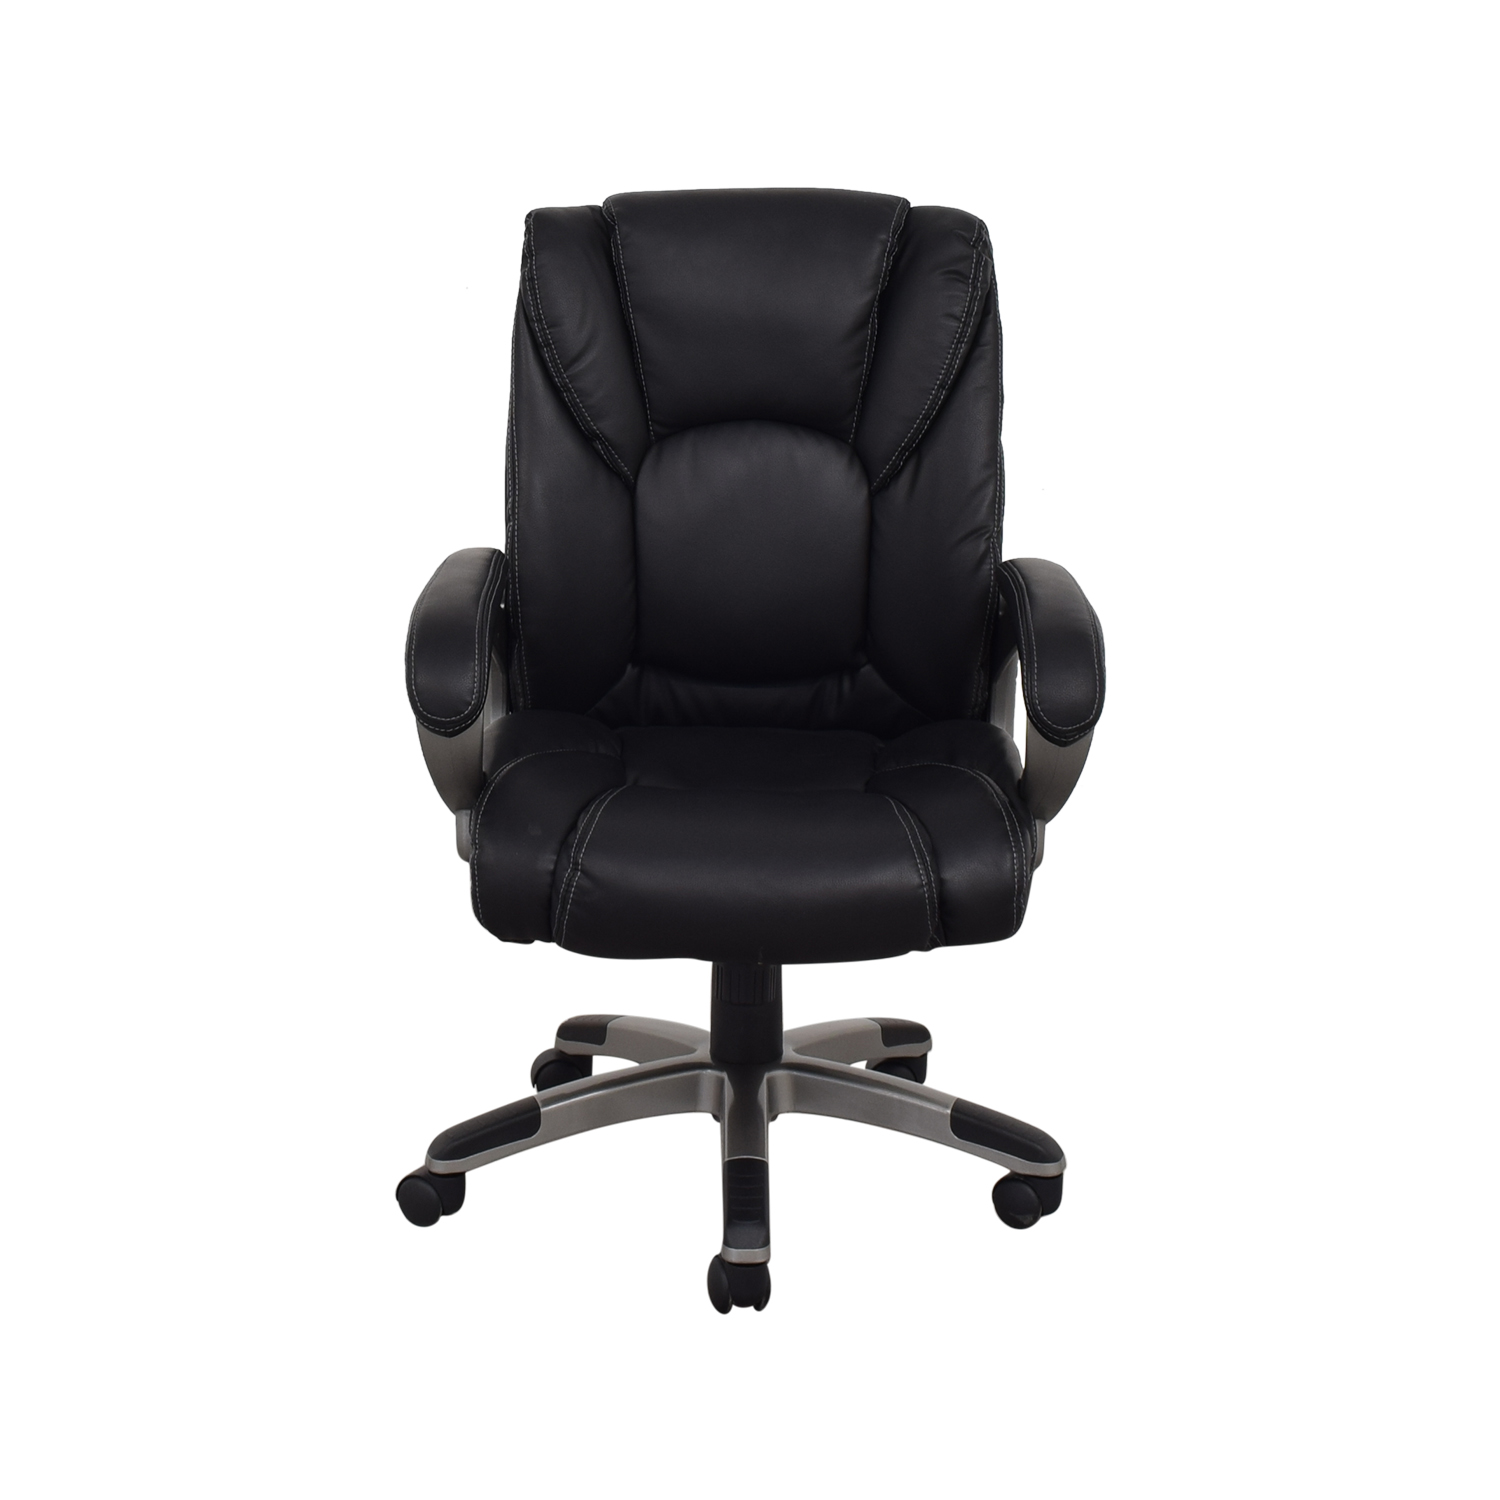 Office Depot Office Depot Home Office Chair ct